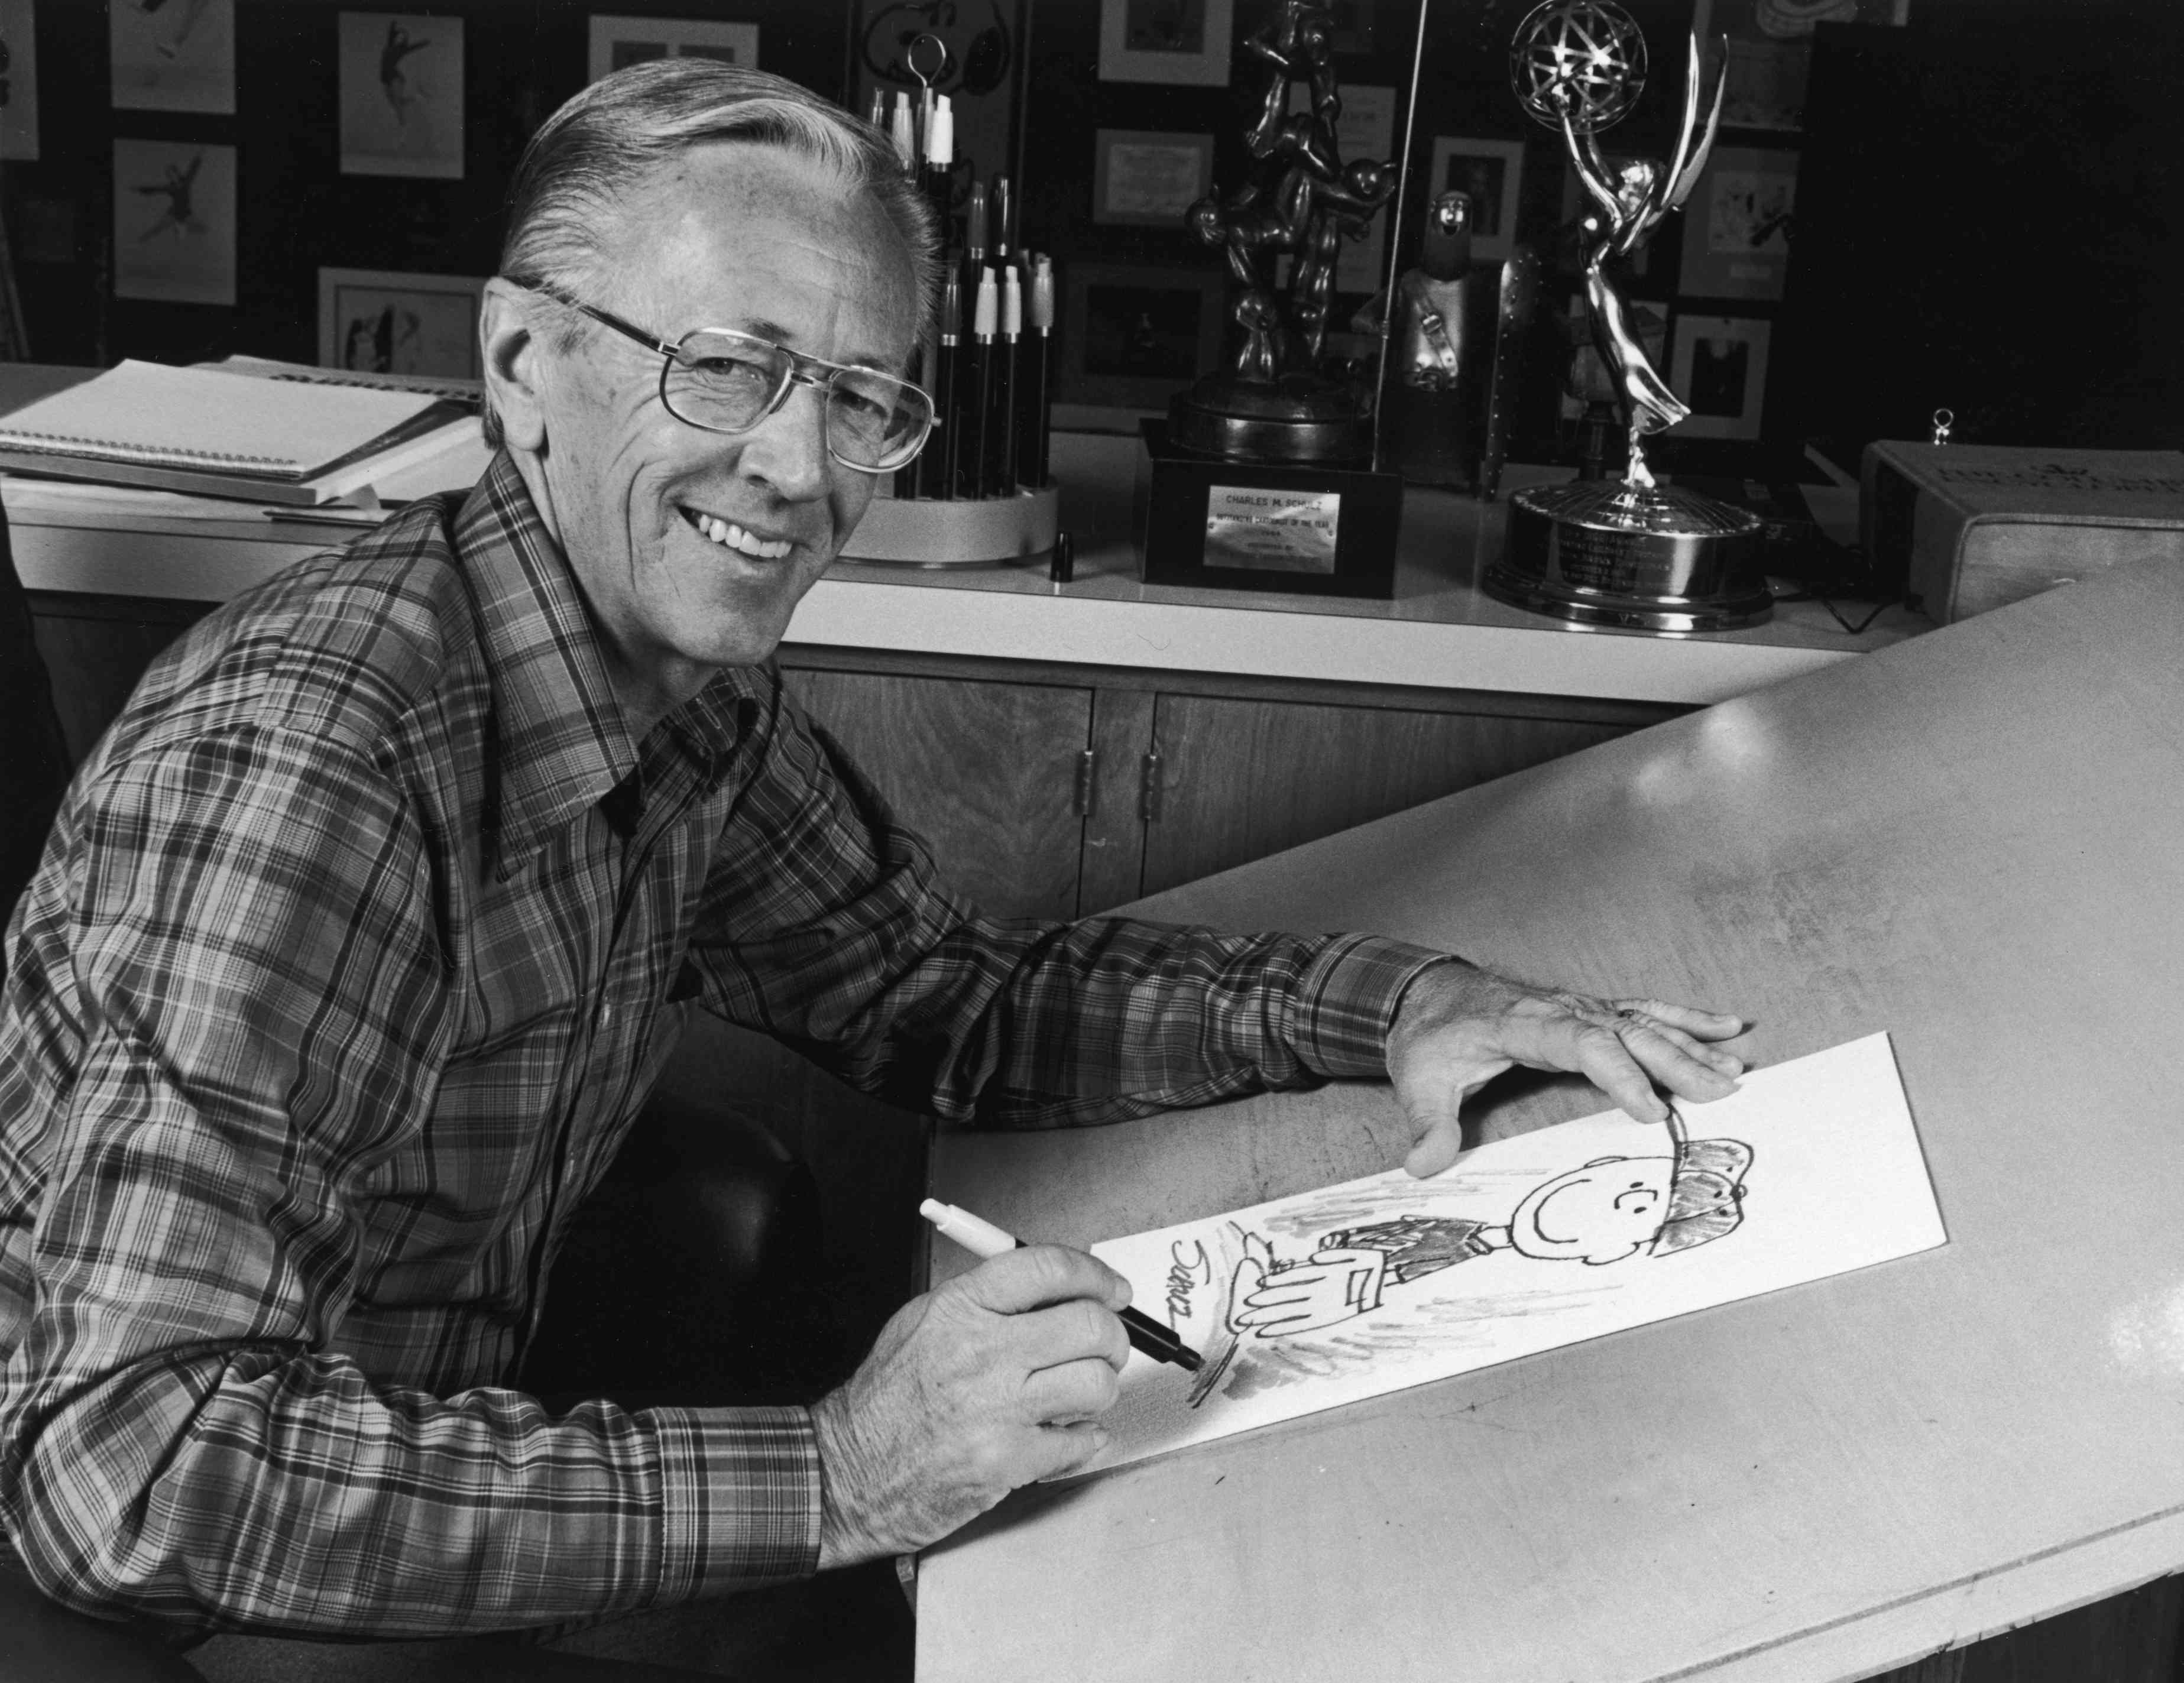 1978: Portrait of American cartoonist Charles M Schulz (1922 - 2001), creator of the 'Peanuts' comic strip, sitting at his studio drawing table with a picture of his character Charlie Brown and some awards behind him. Schulz created the comic strip in 1950.